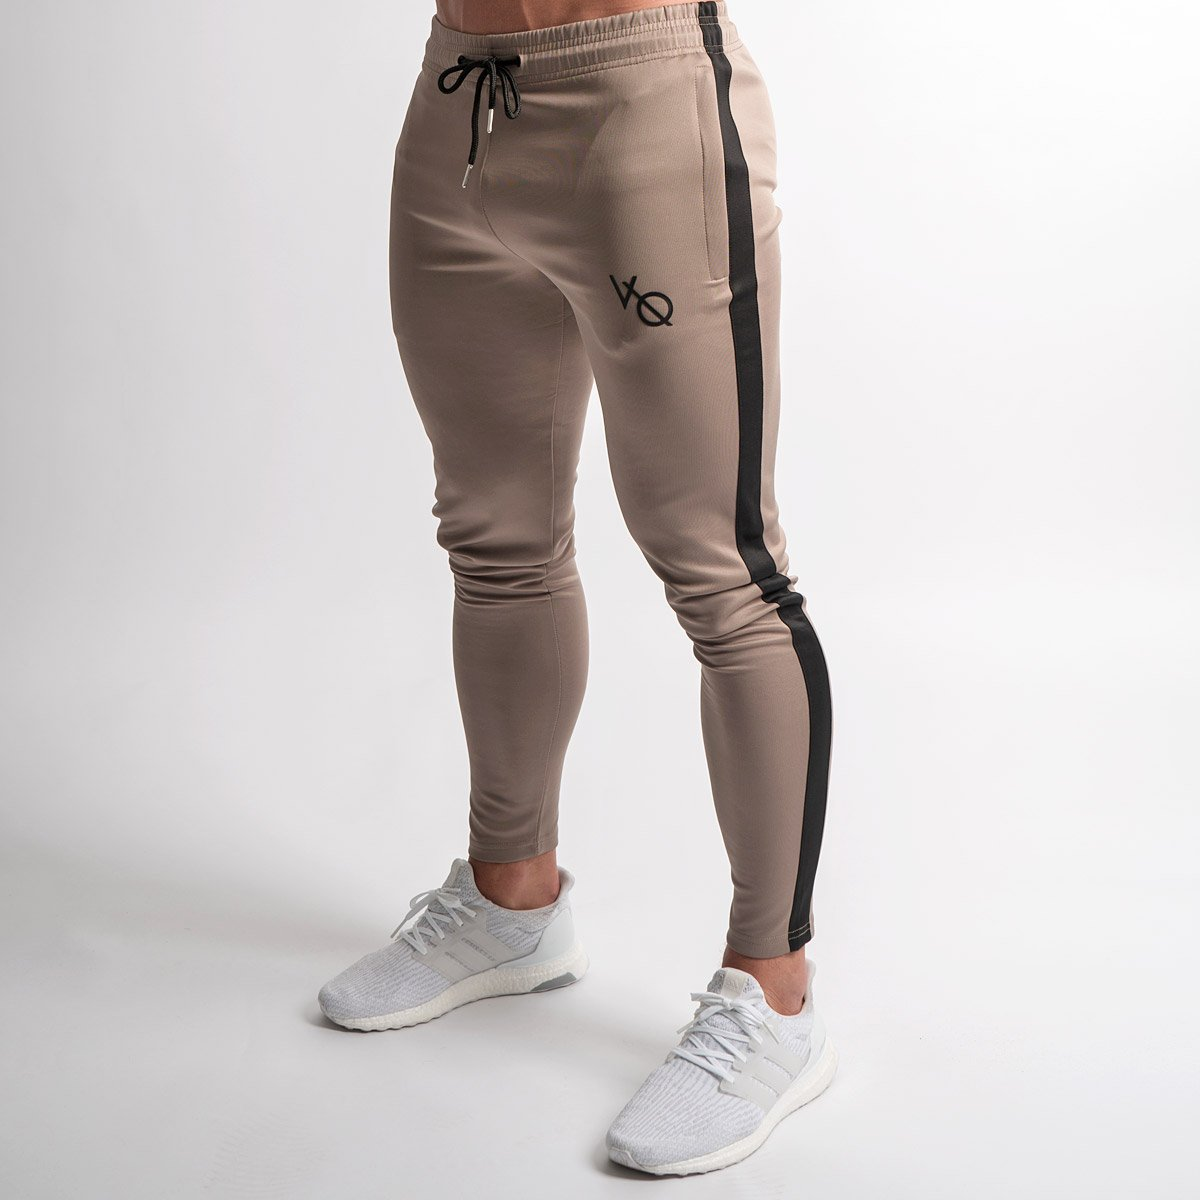 2018 New Style Muscle Brother Brace Trousers VQ Slim Fit Sports Running Athletic Pants